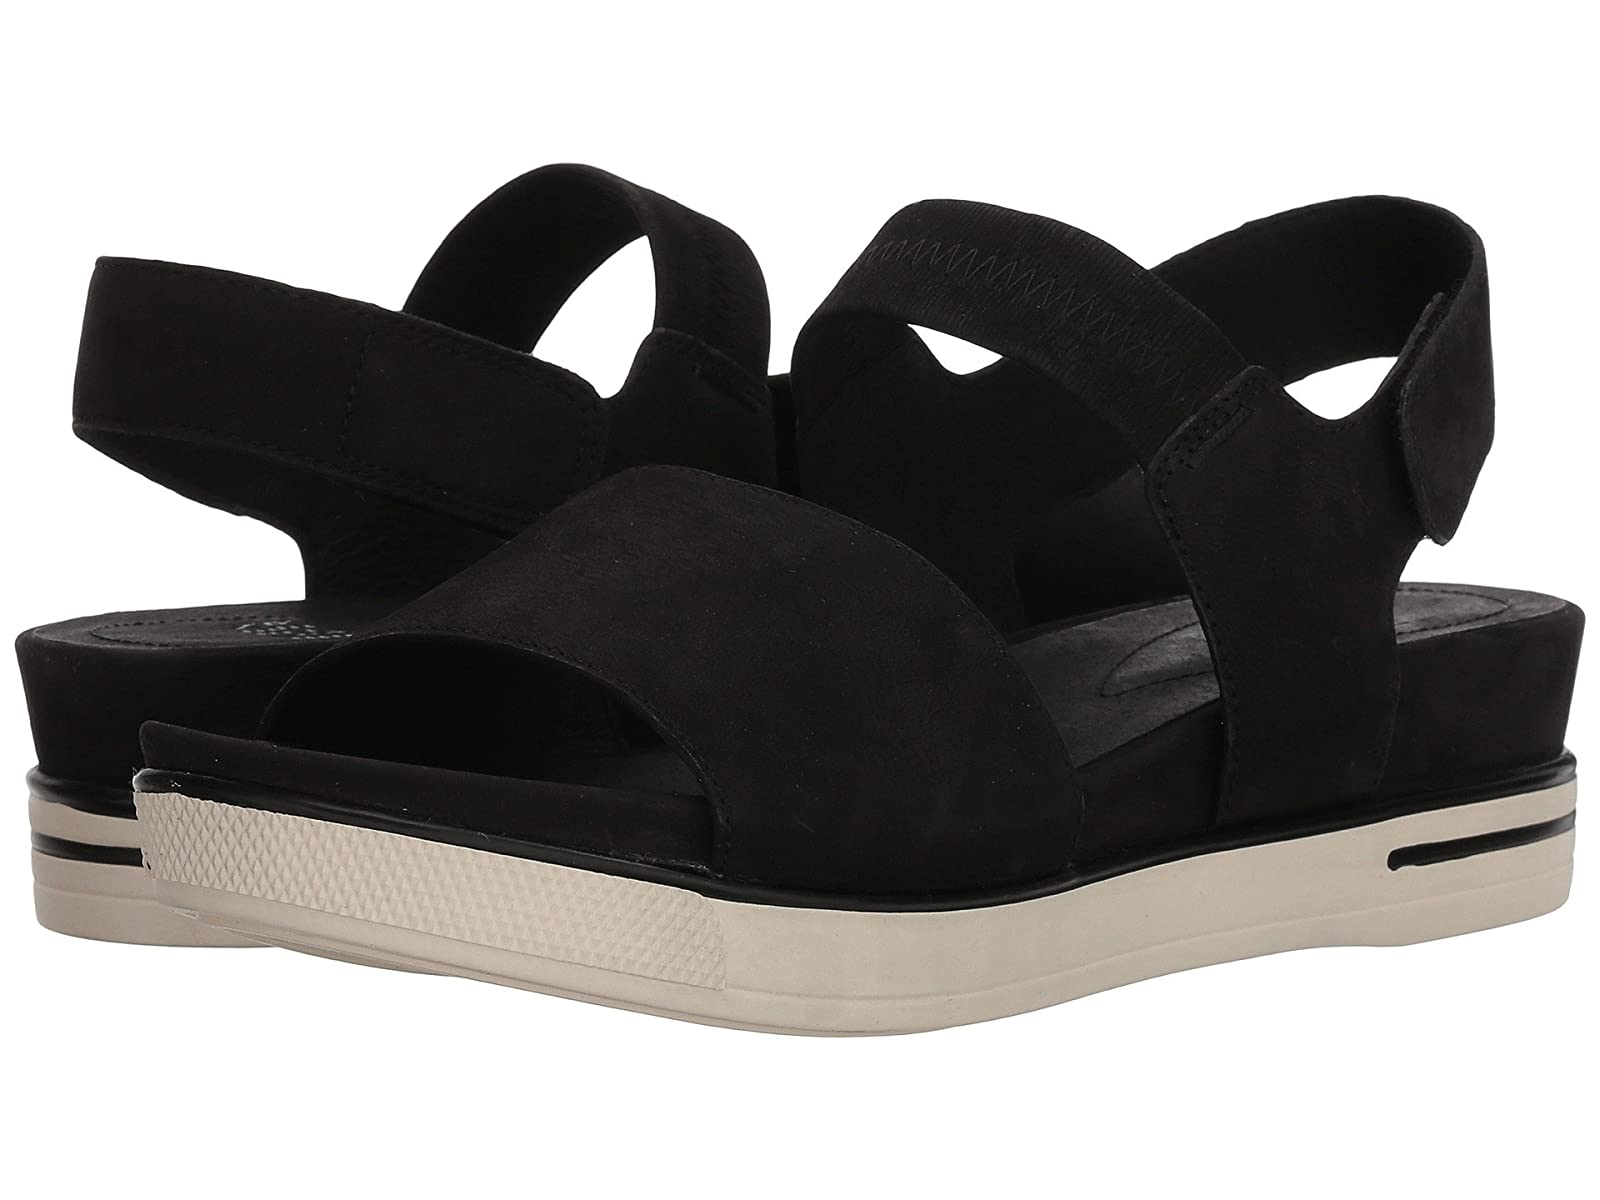 Eileen Fisher SomerAtmospheric grades have affordable shoes